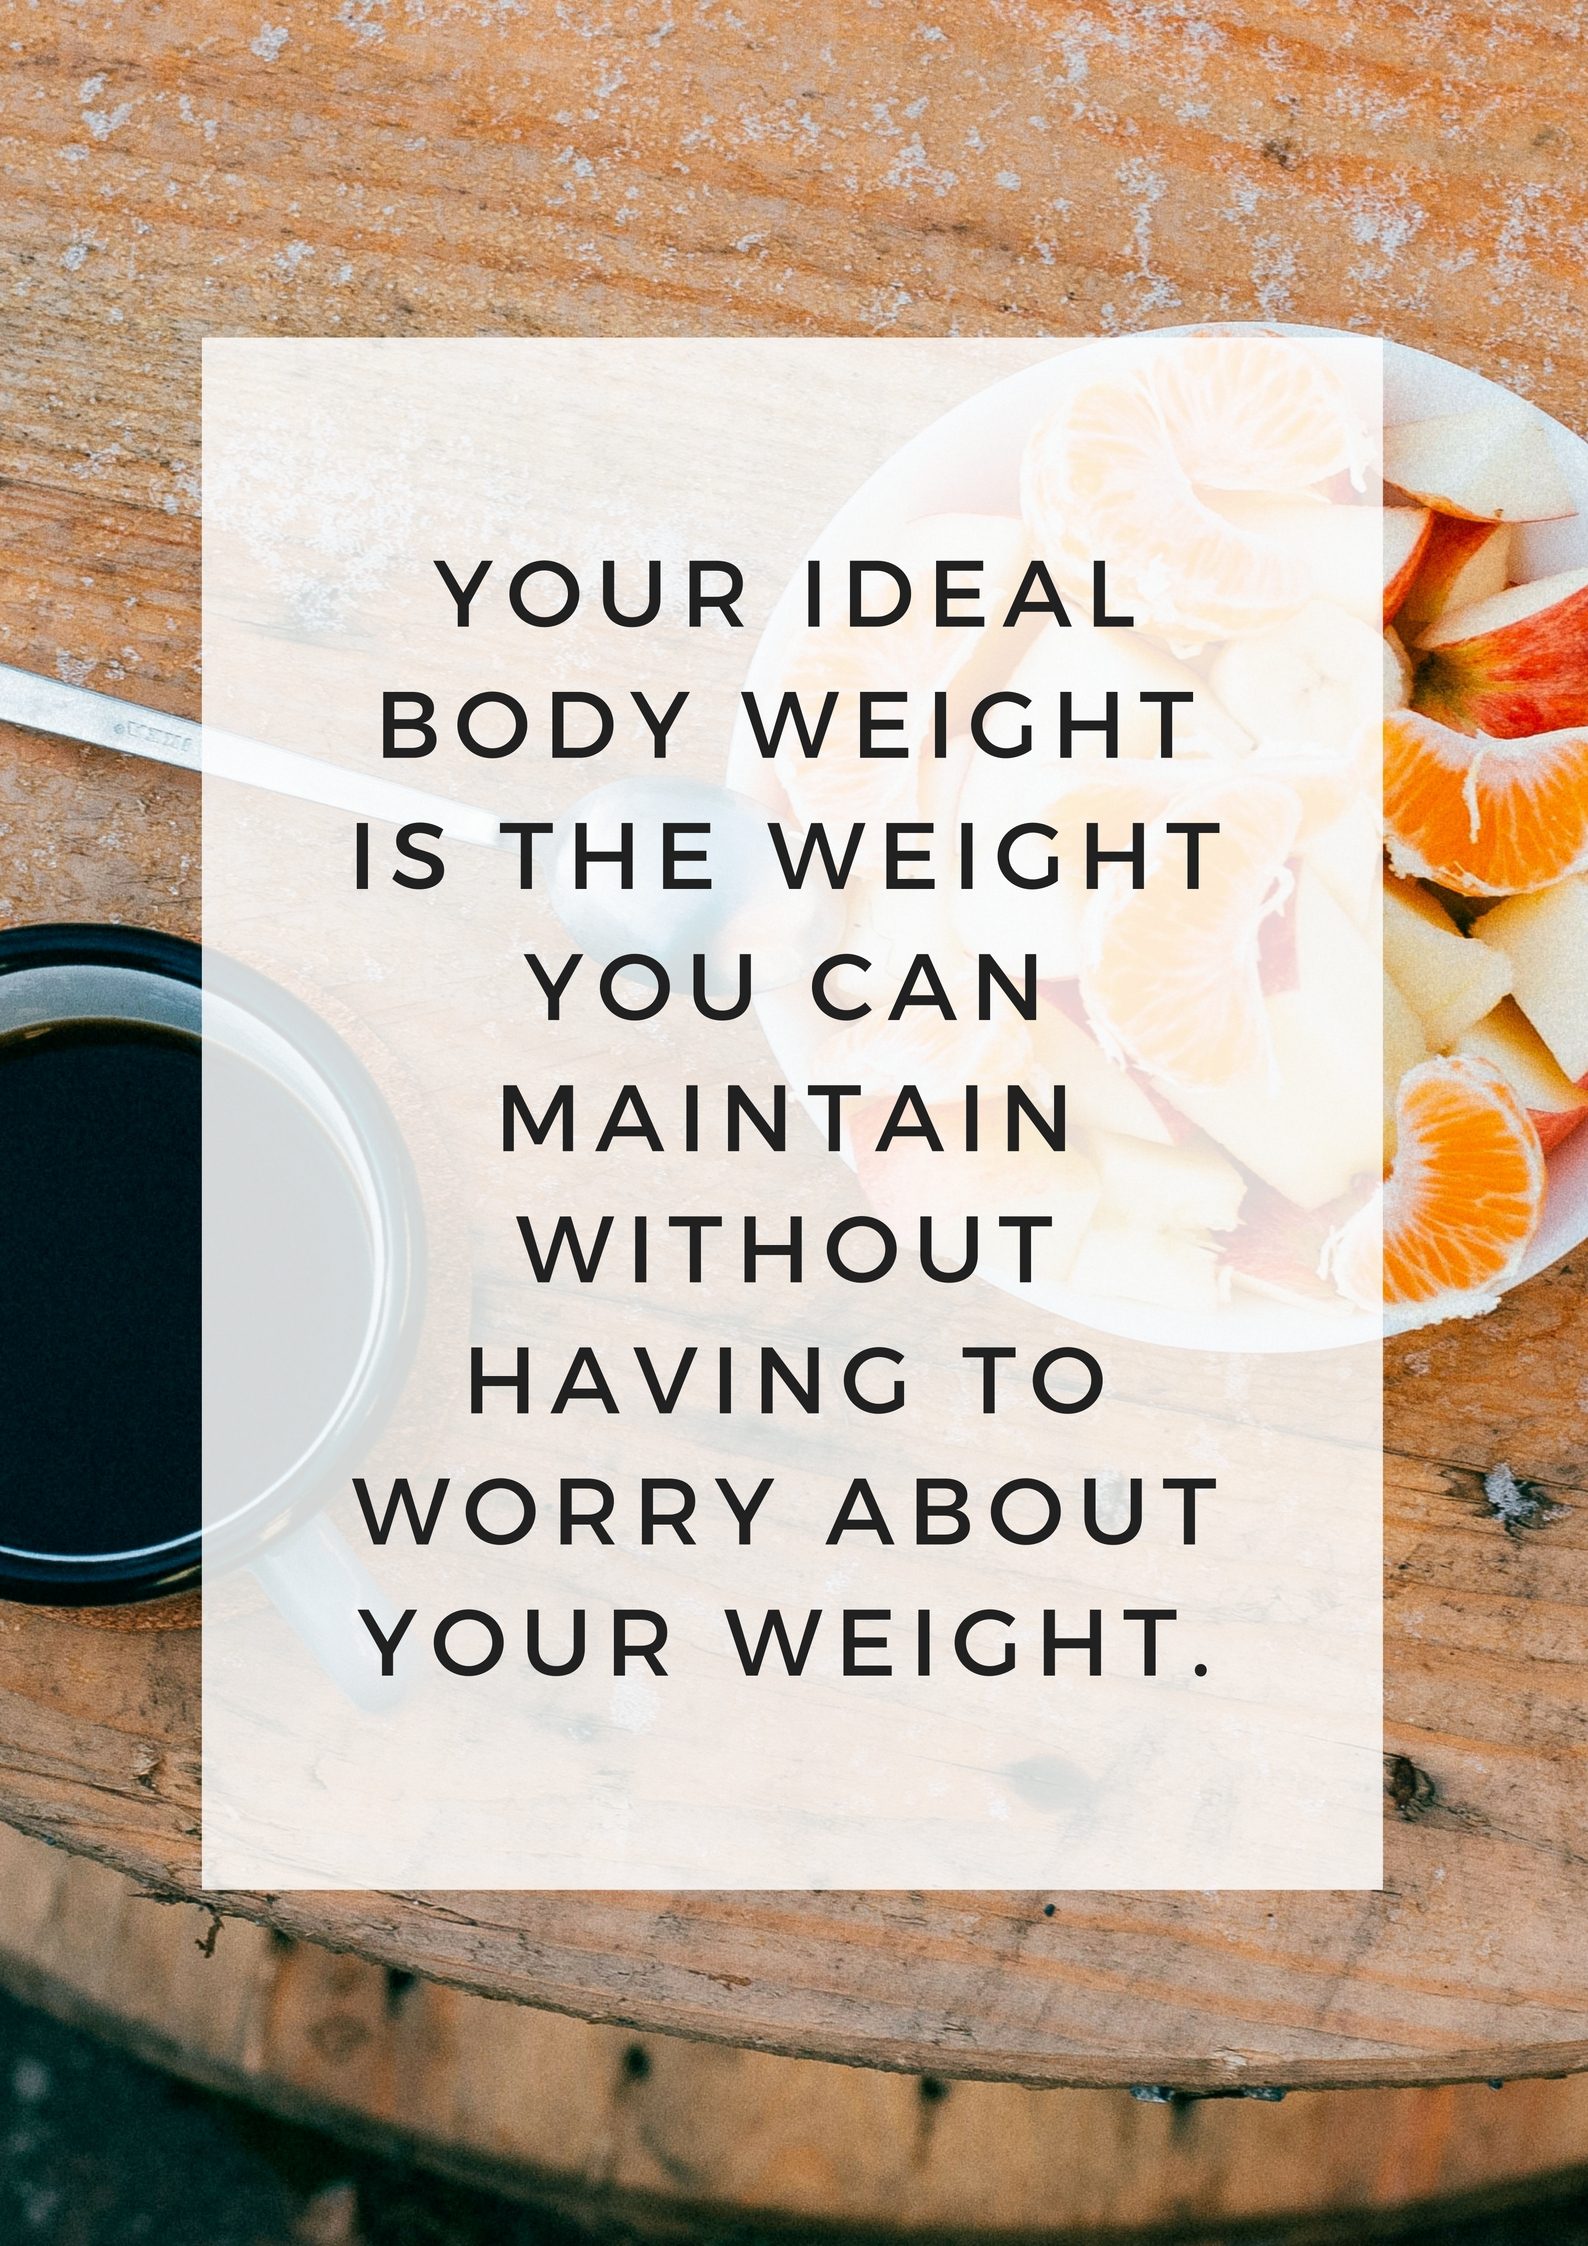 How to find your ideal body weight | Runwholenutrition.com